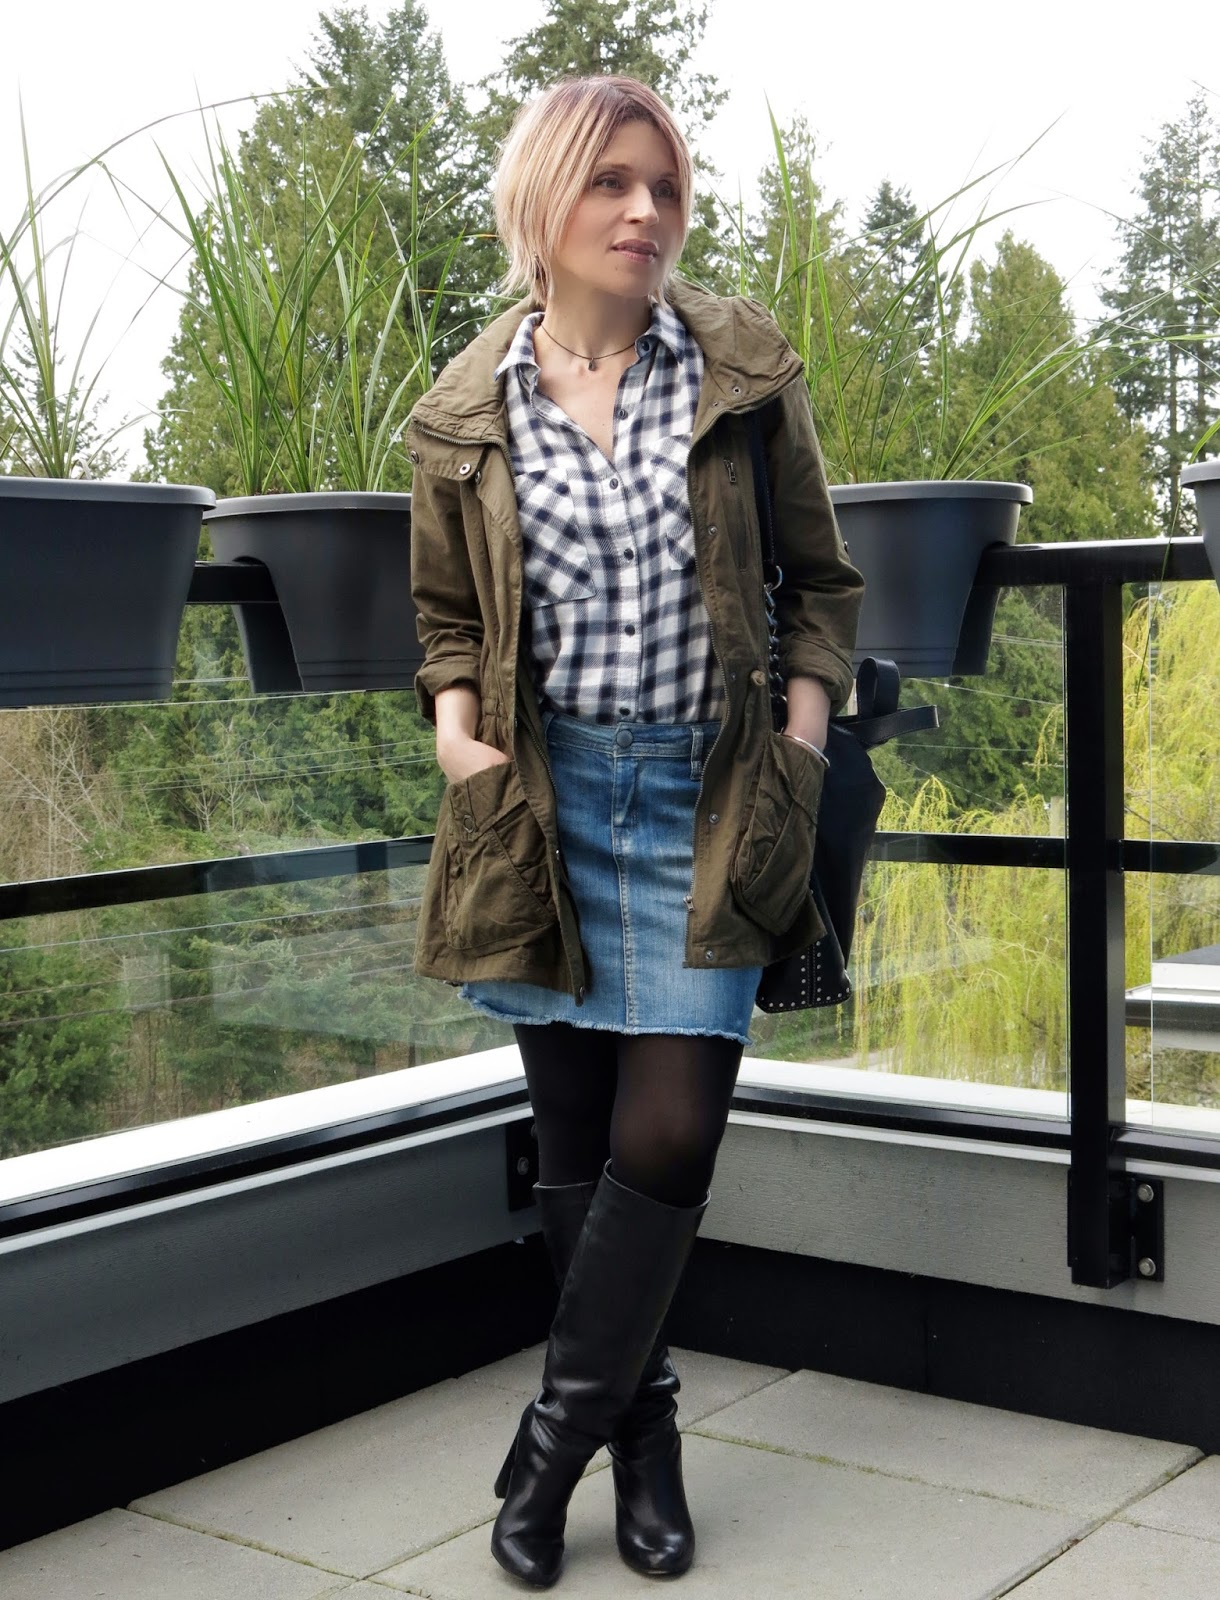 Crowning glory:  denim miniskirt with tights, tall boots, a plaid shirt, and an army jacket